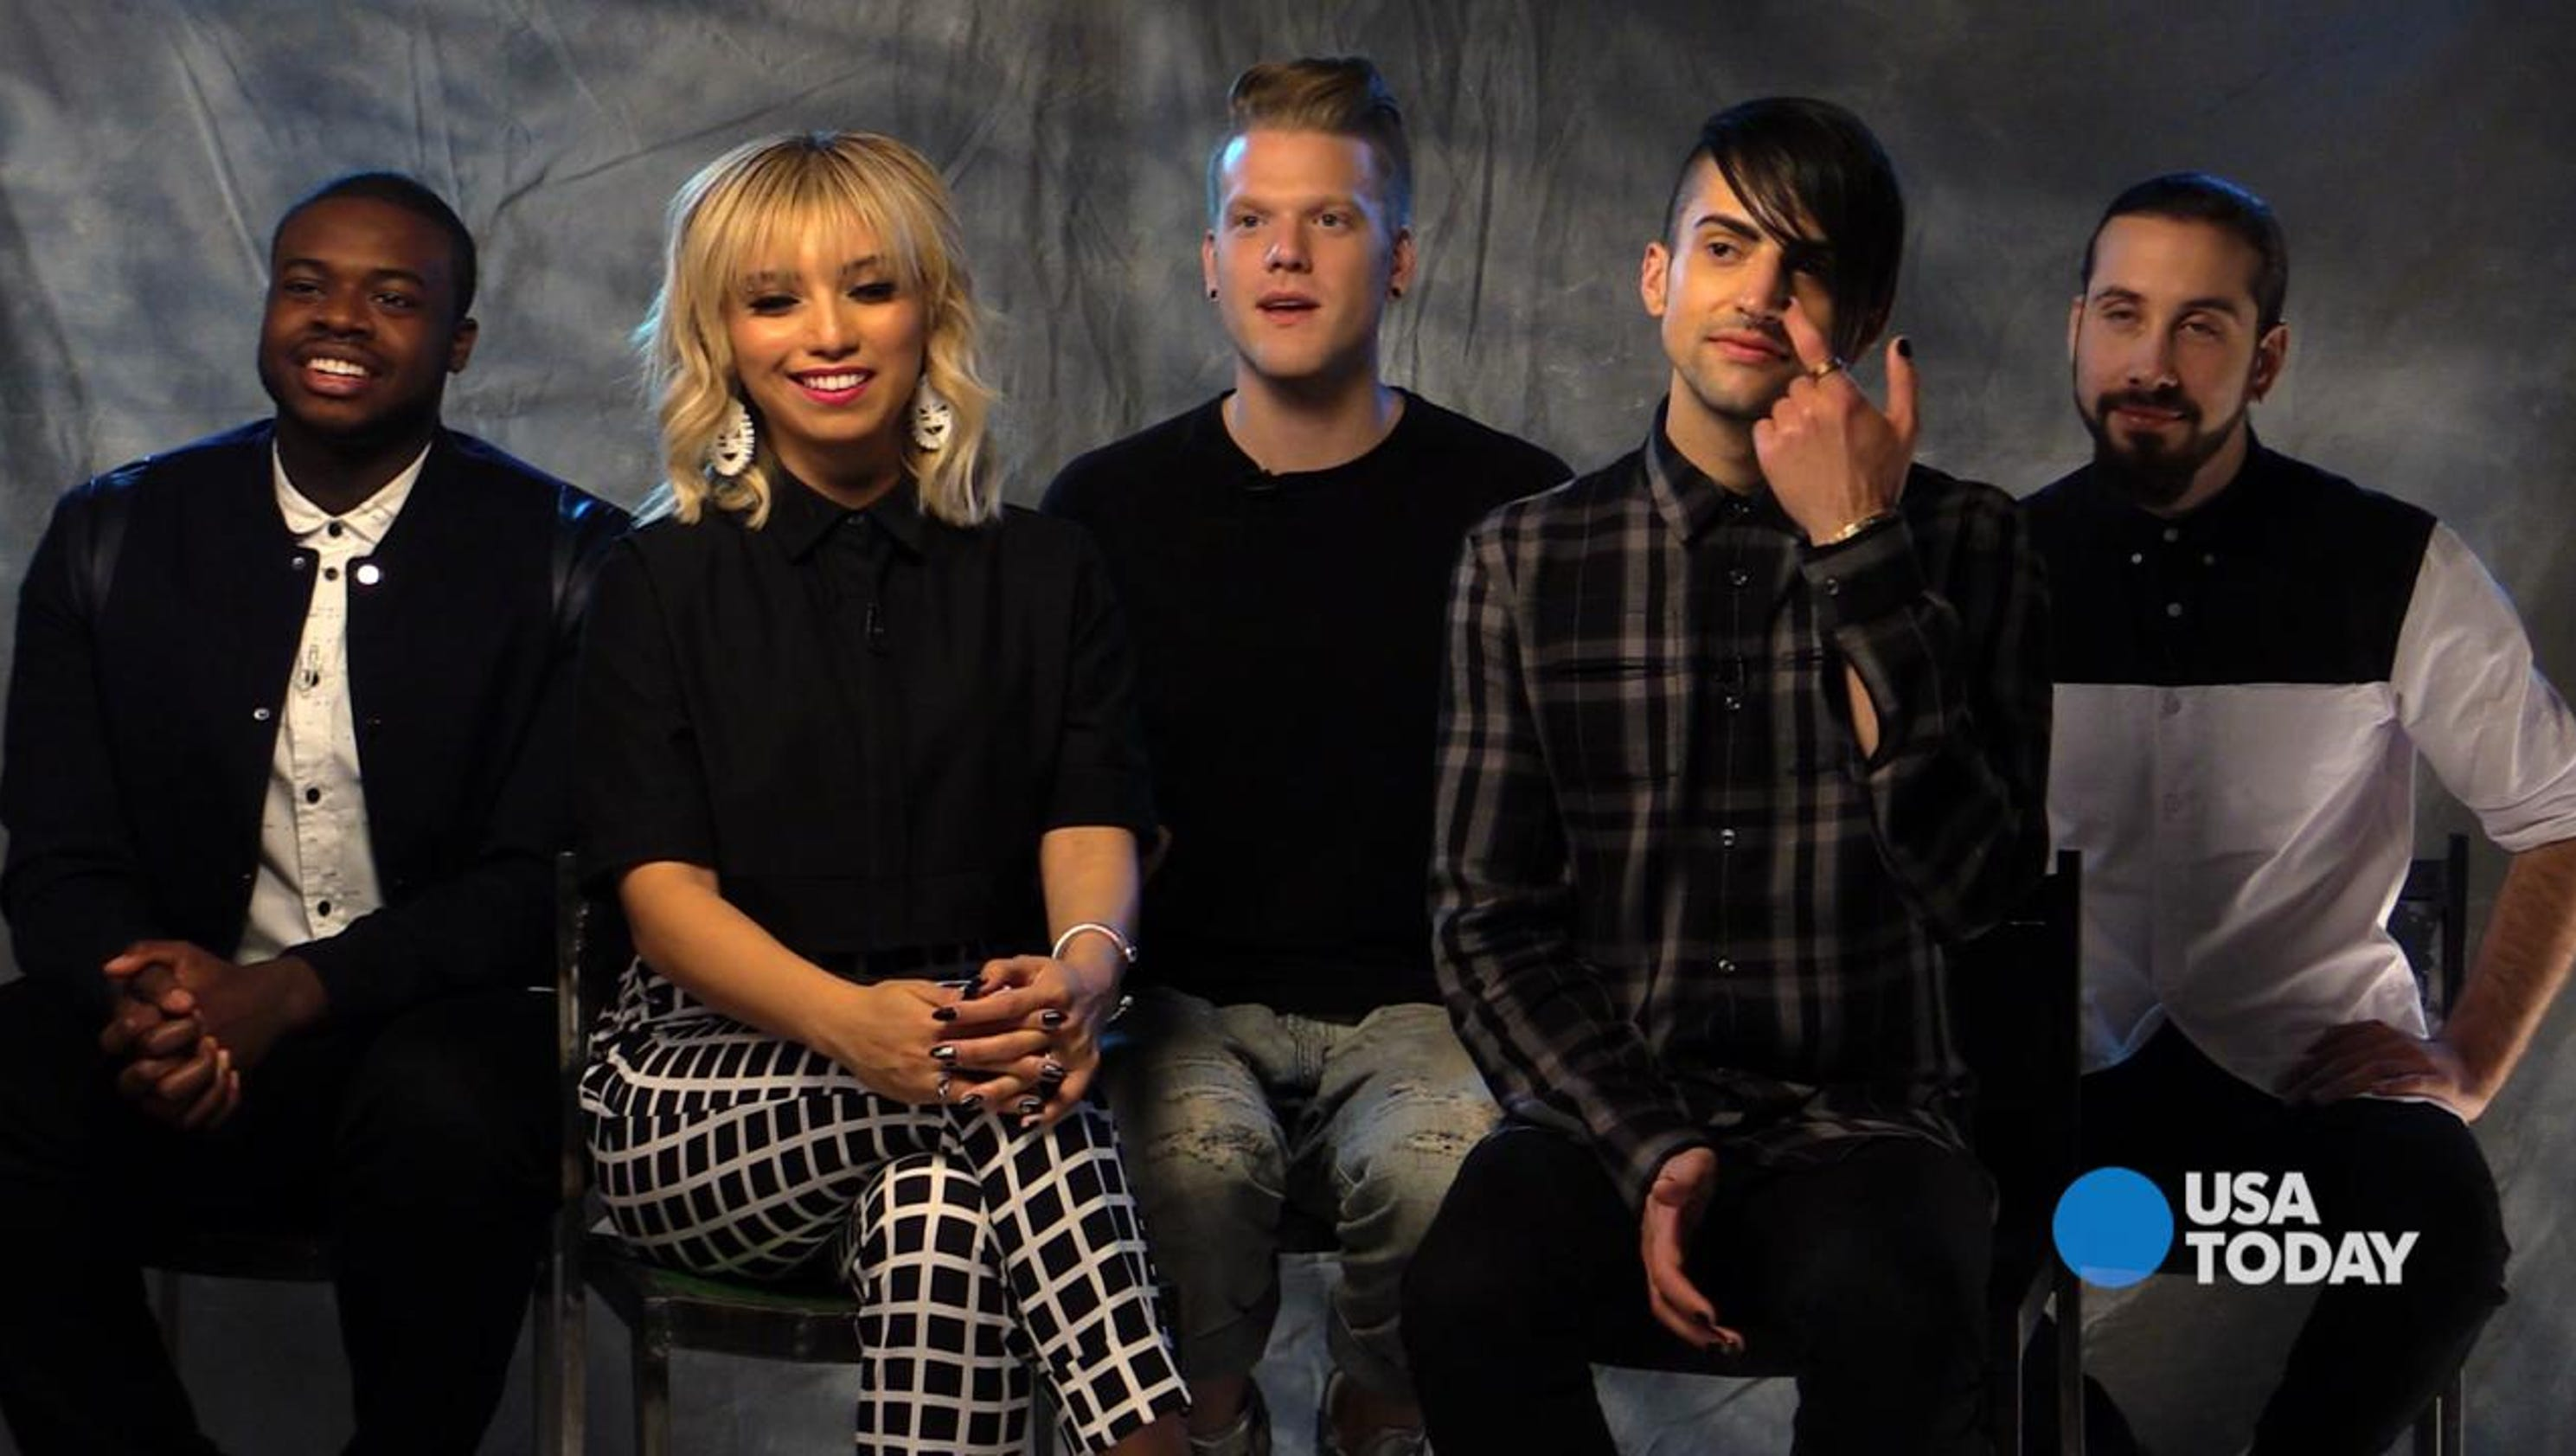 are two members of pentatonix dating Pentatonix member kirstin maldonado thought she was going to paris for a memorial day weekend vacation with jeremy michael lewis but as it turns out, her boyfriend had a few surprises up his sleeve.